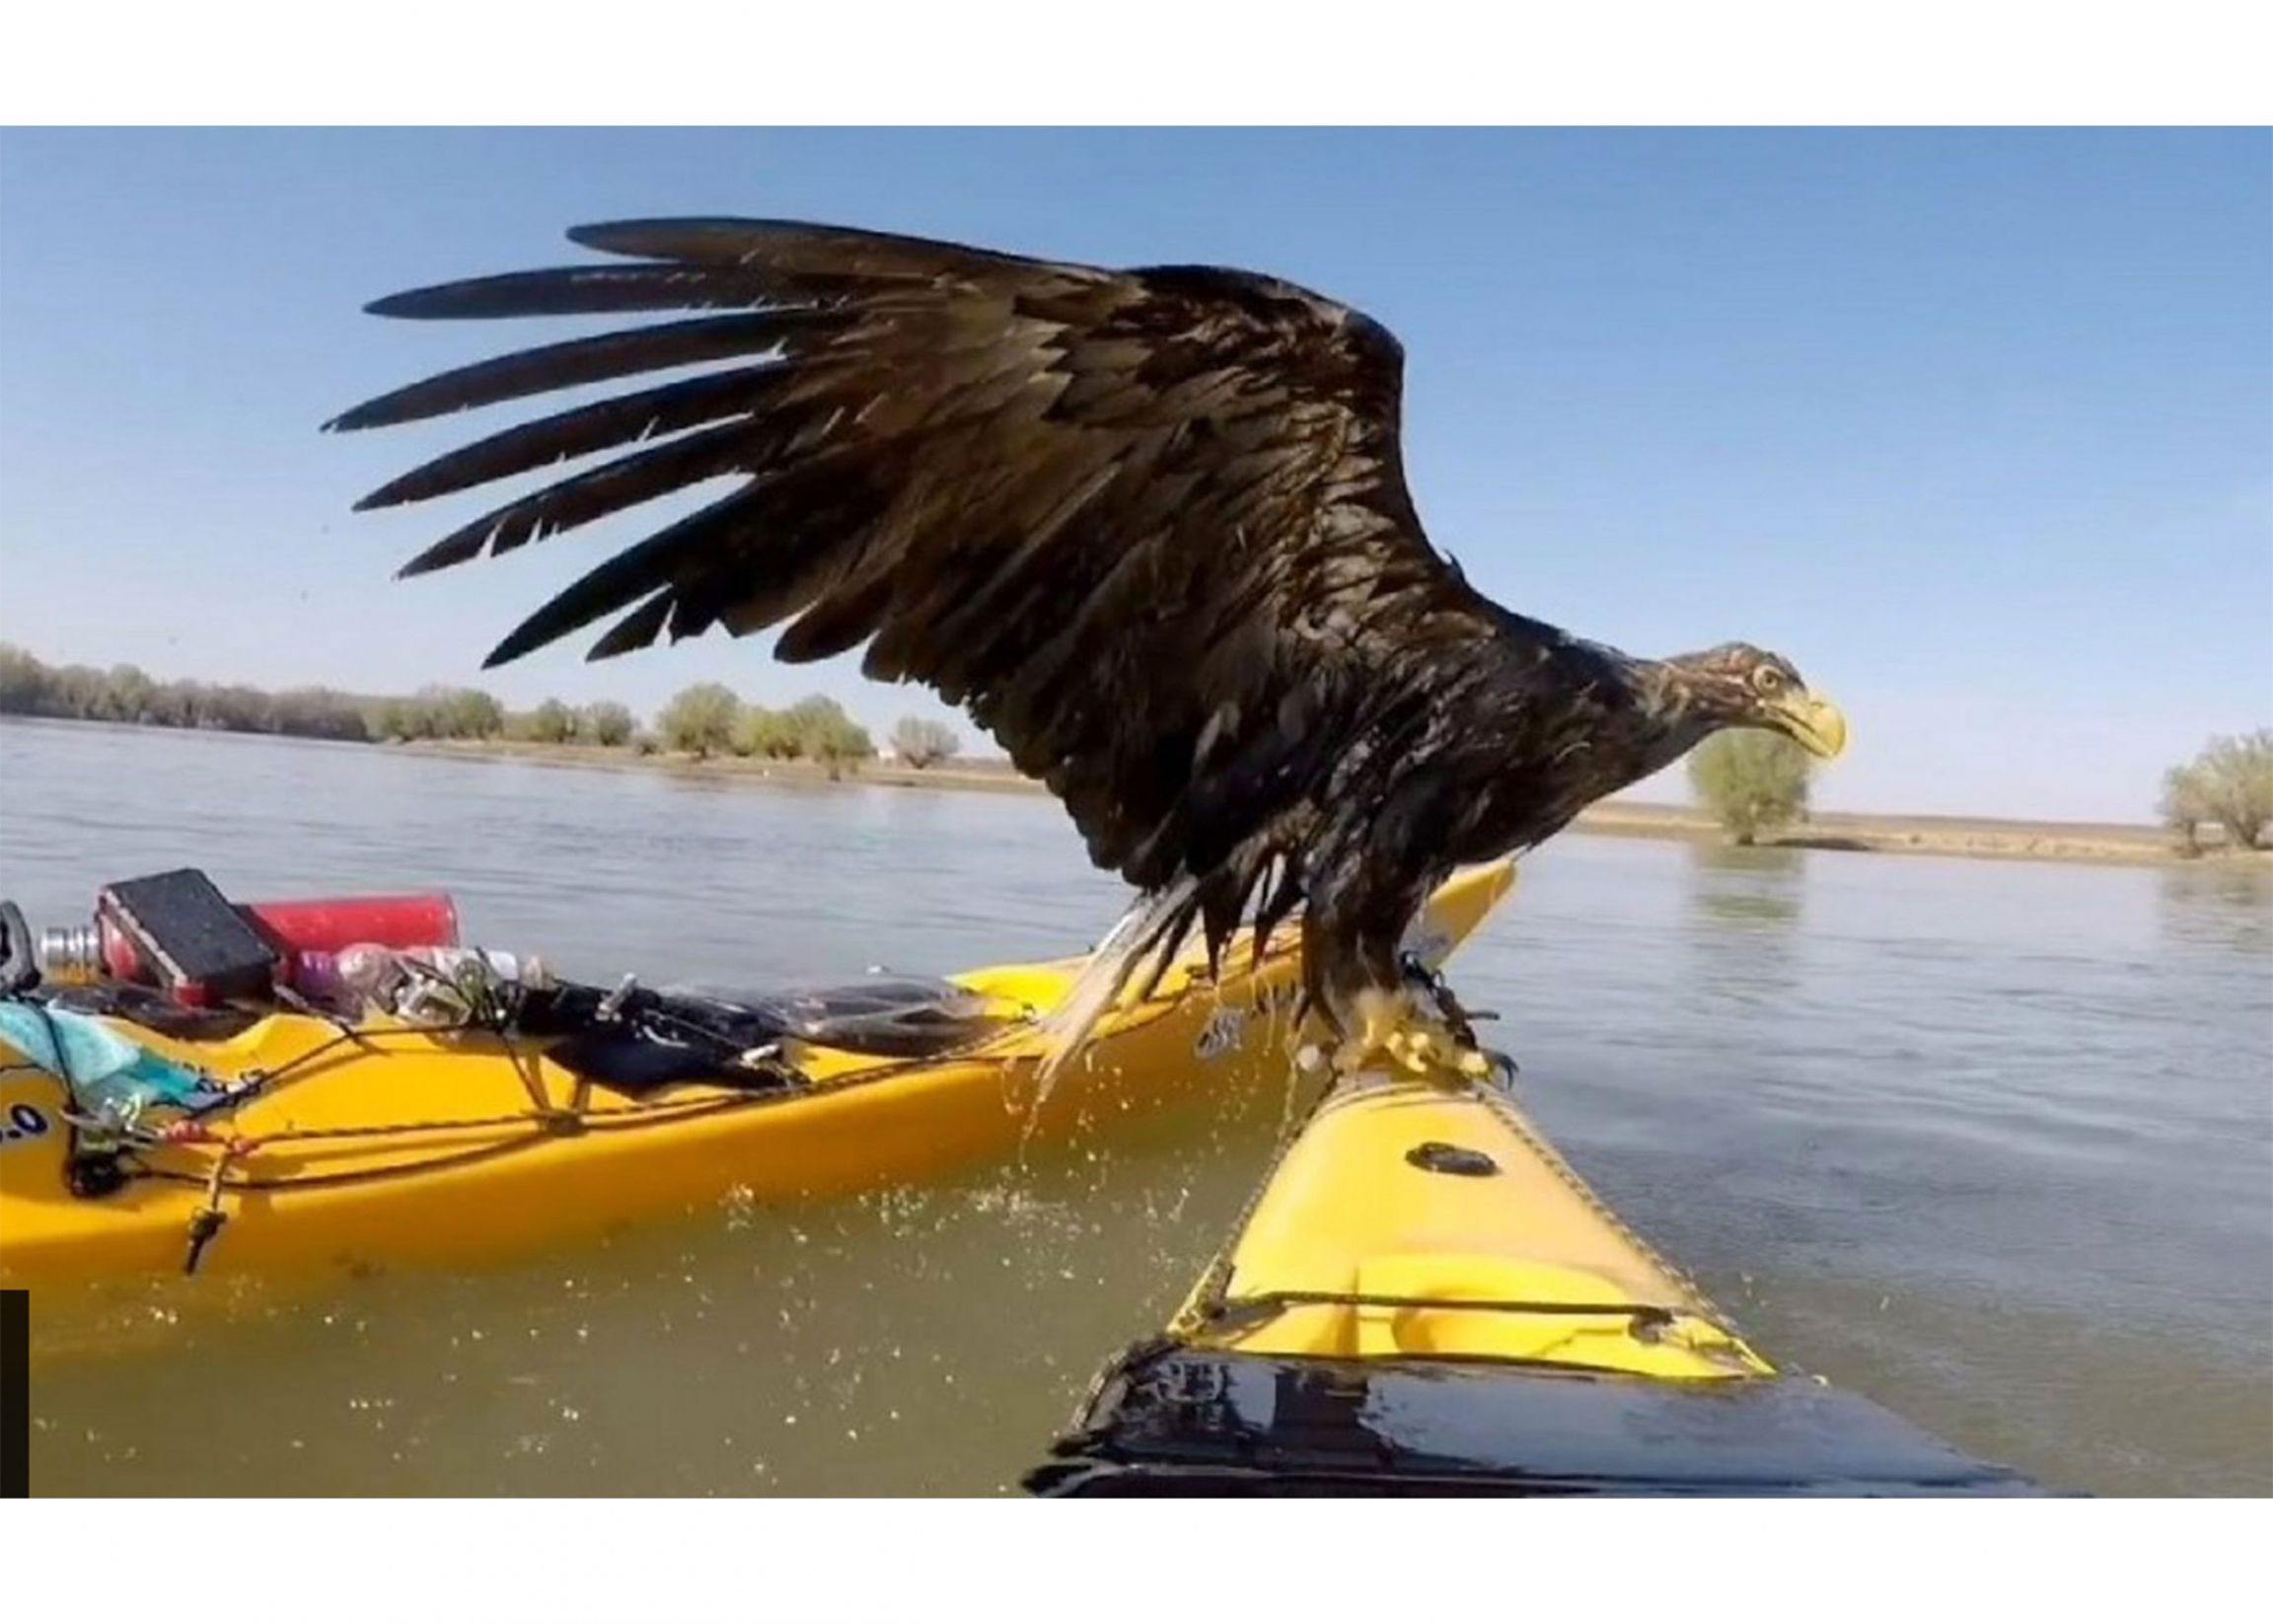 Eagle on part of a yellow boat in the water